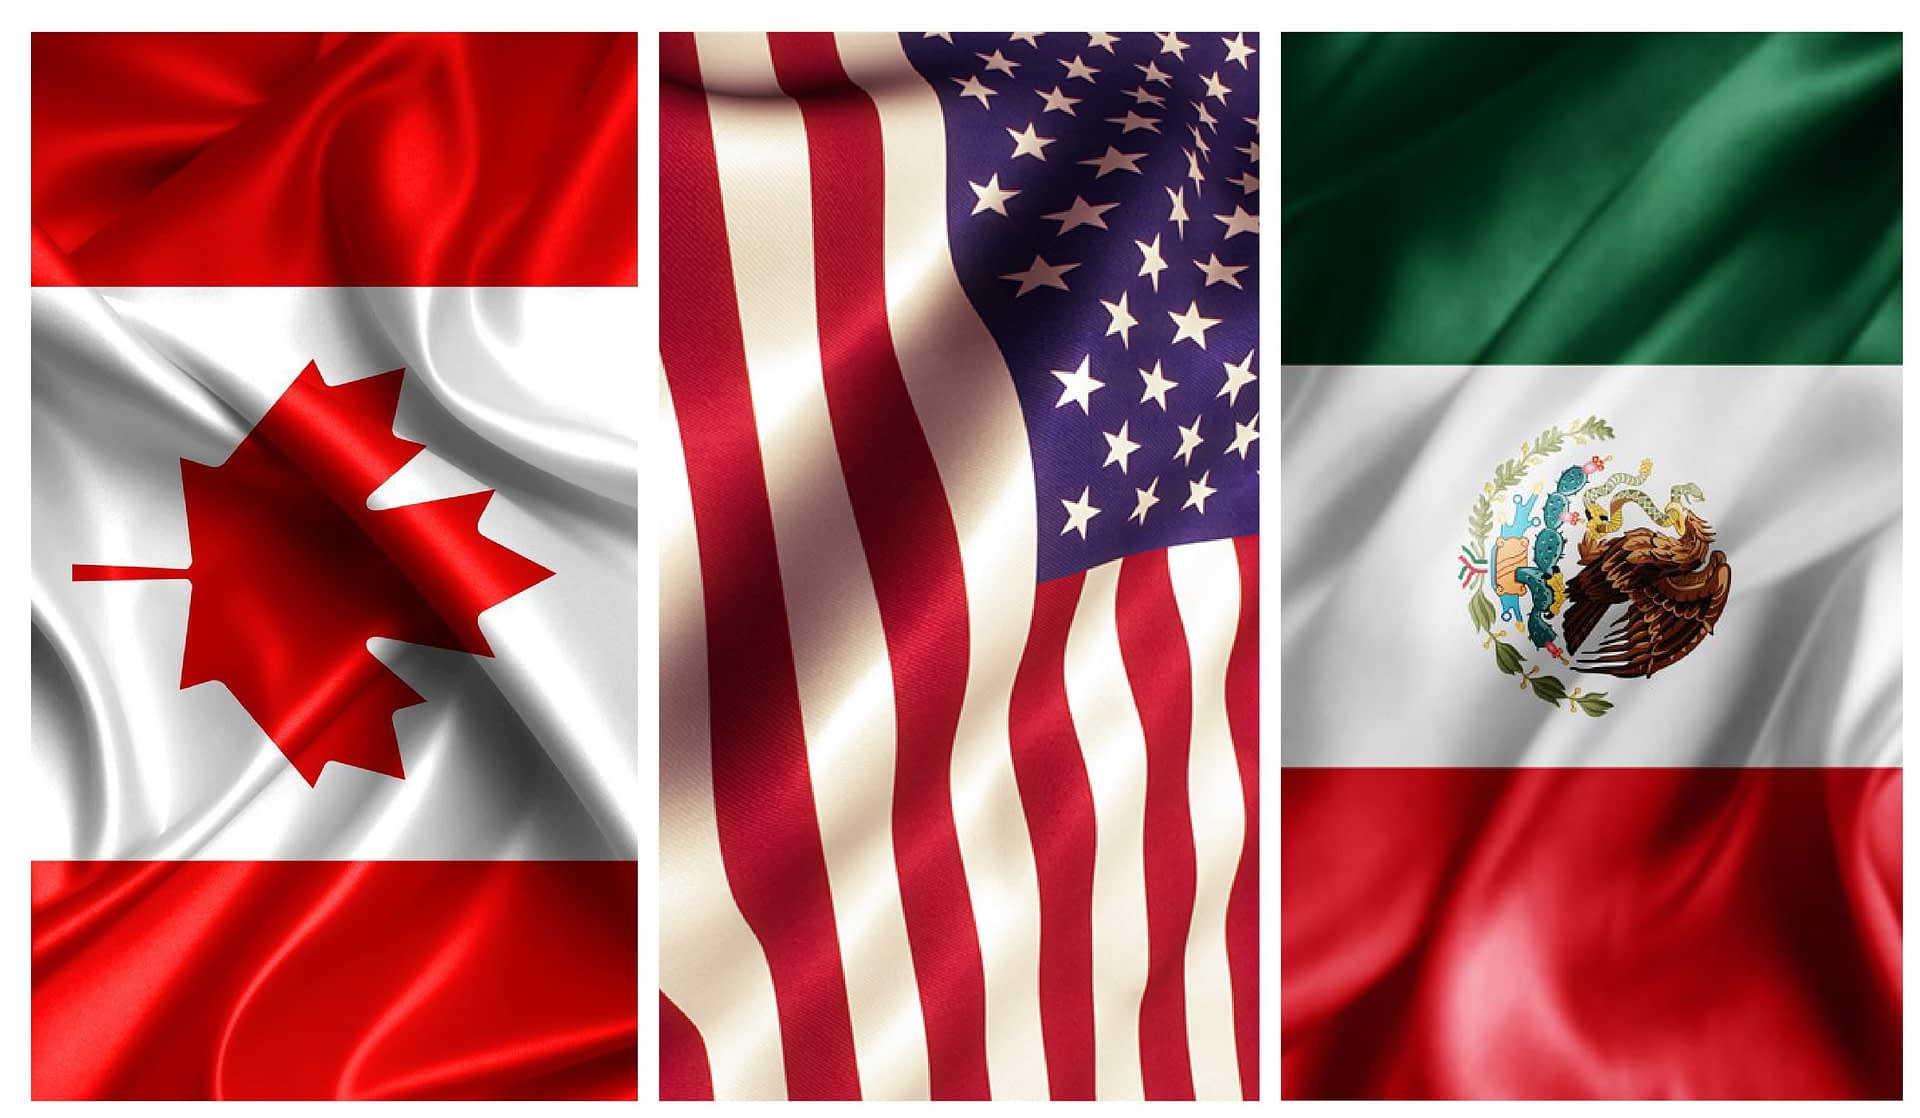 The USMCA is expected to be approved this year